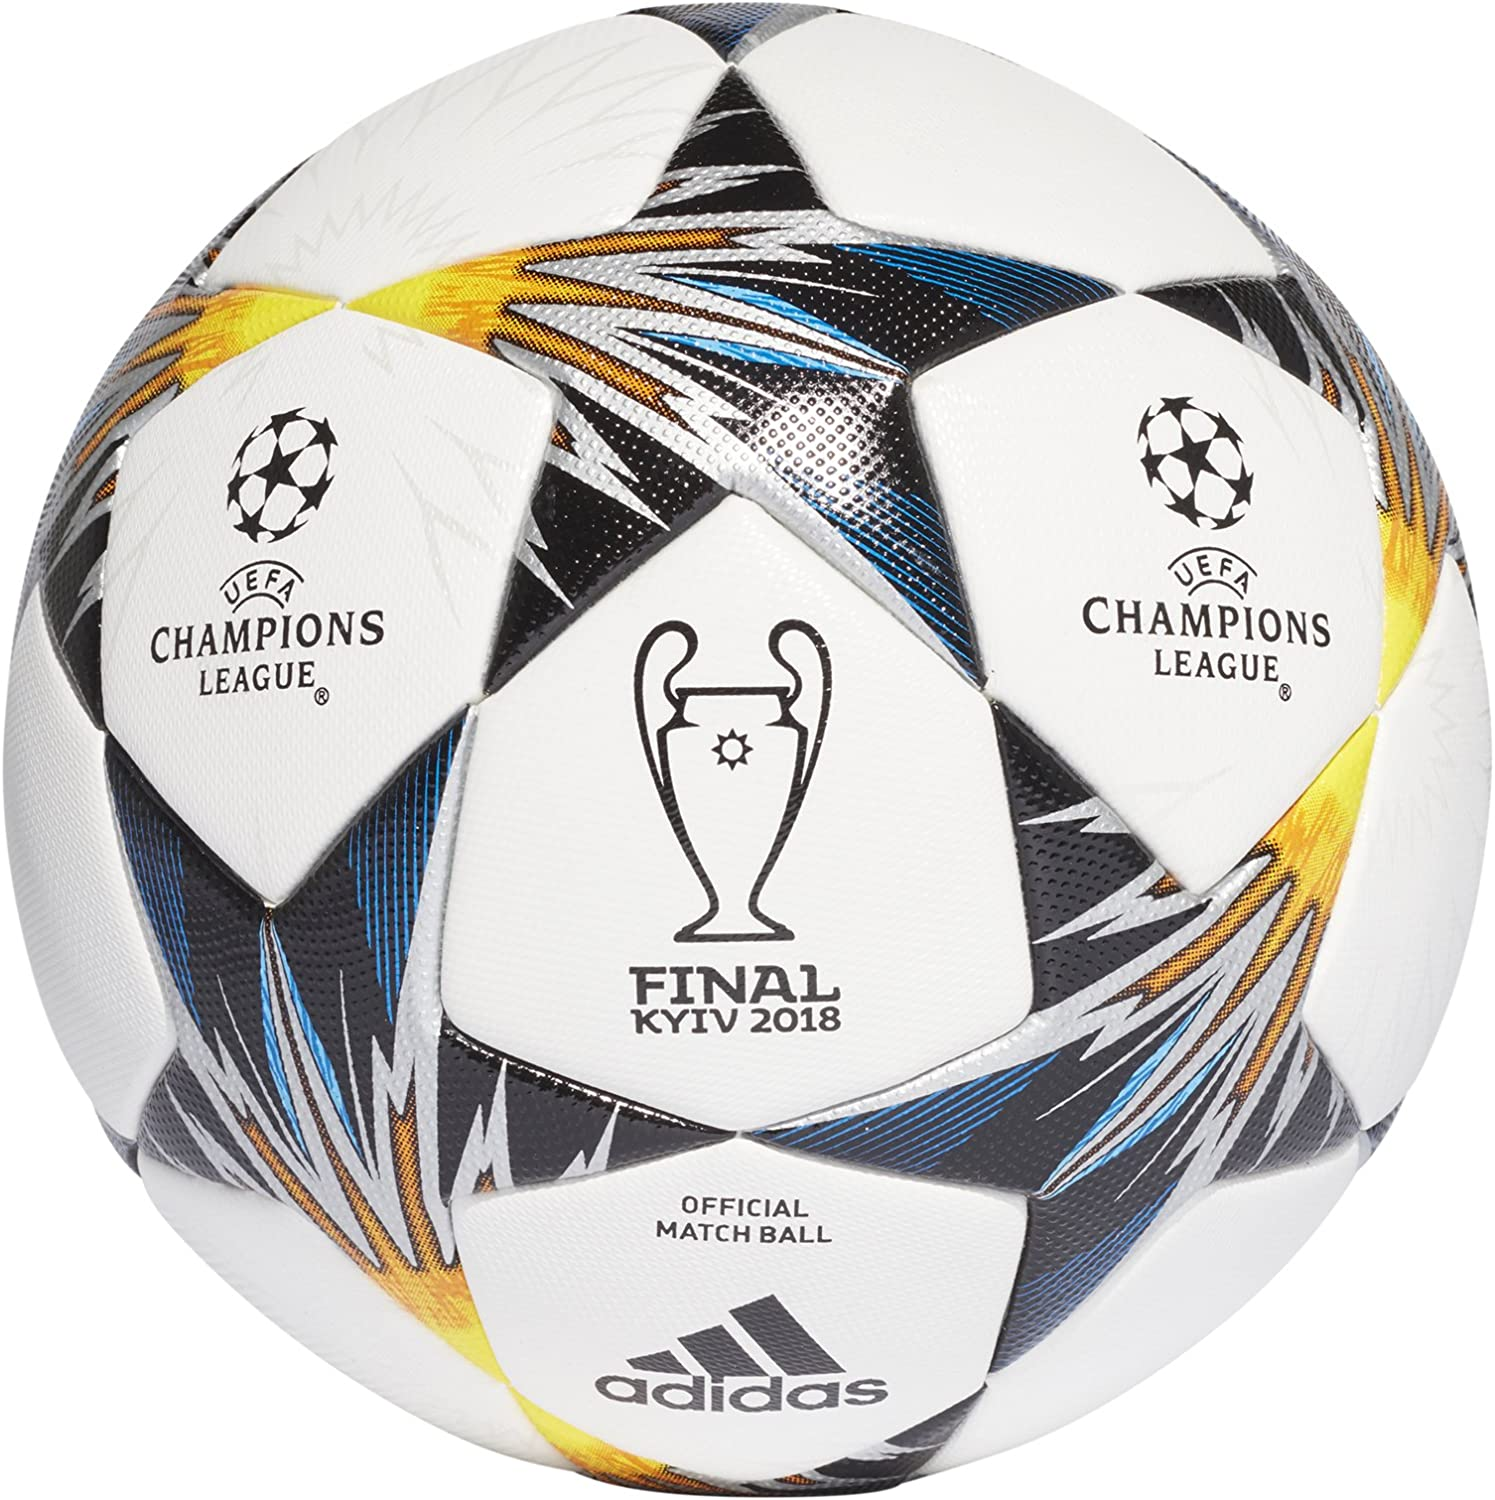 amazon com adidas kiev champions league finale game ball size 5 sports outdoors adidas ucl finale kiev official match soccer ball